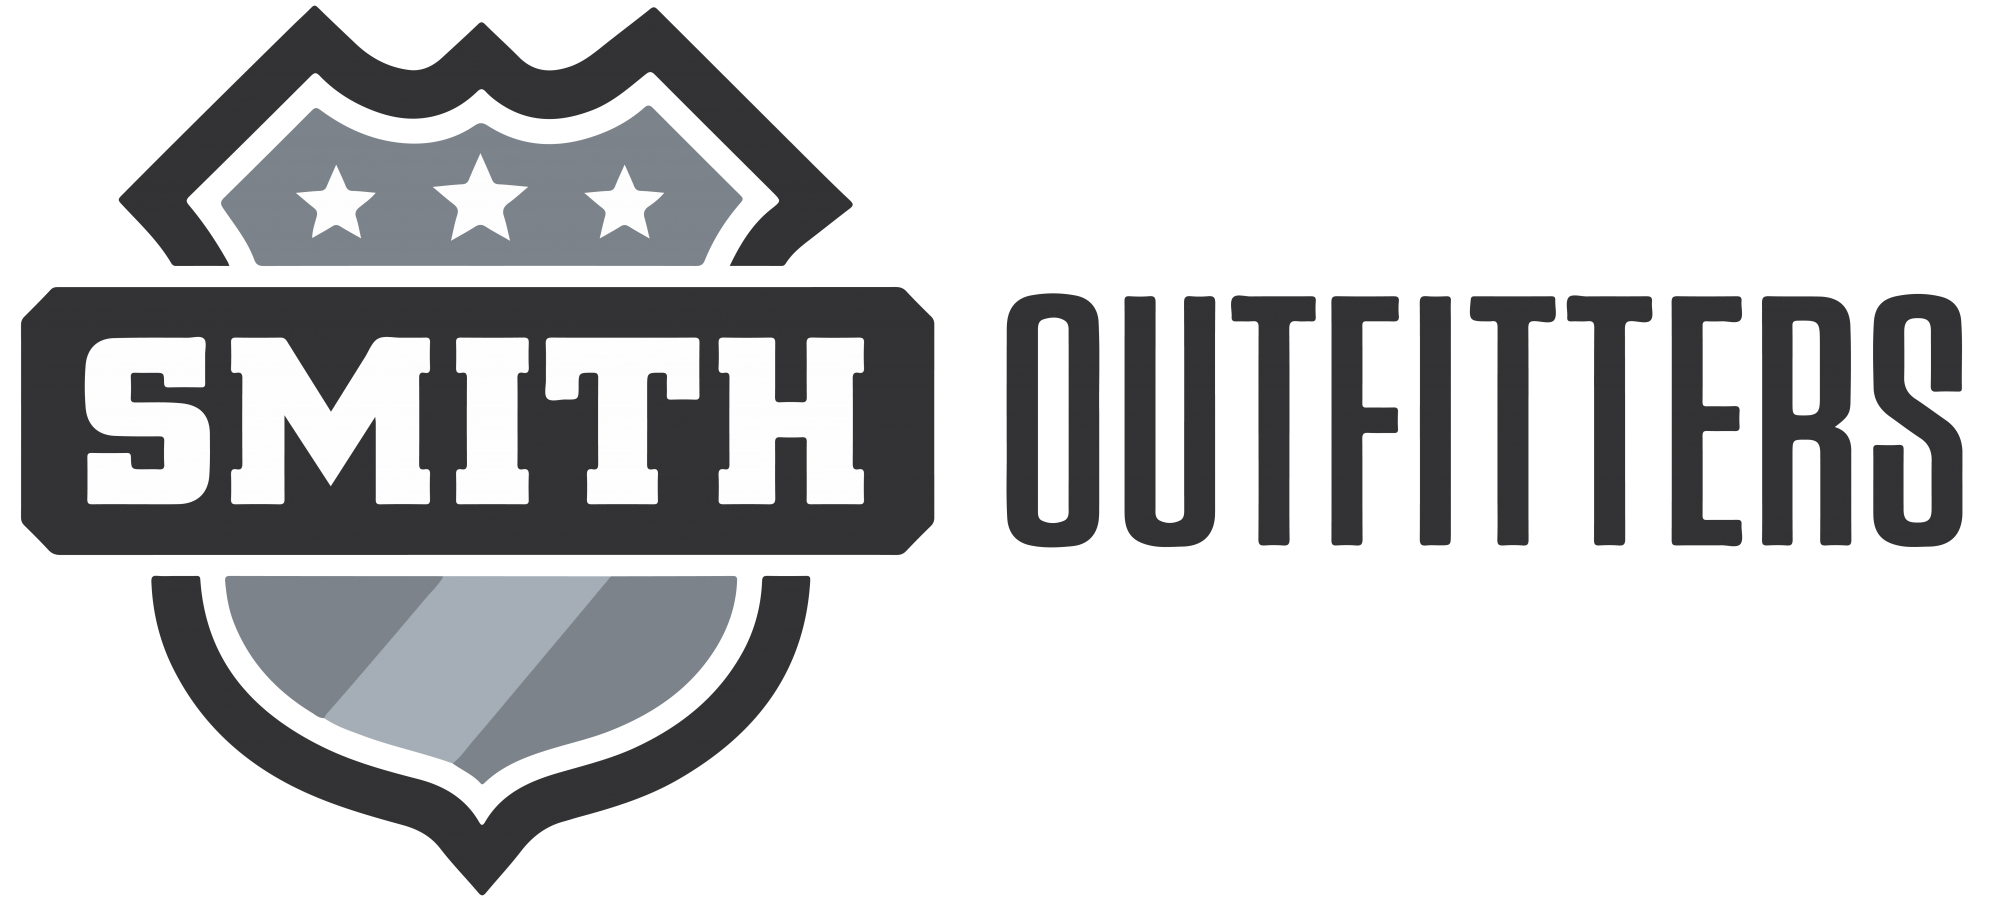 Smith Outfitters